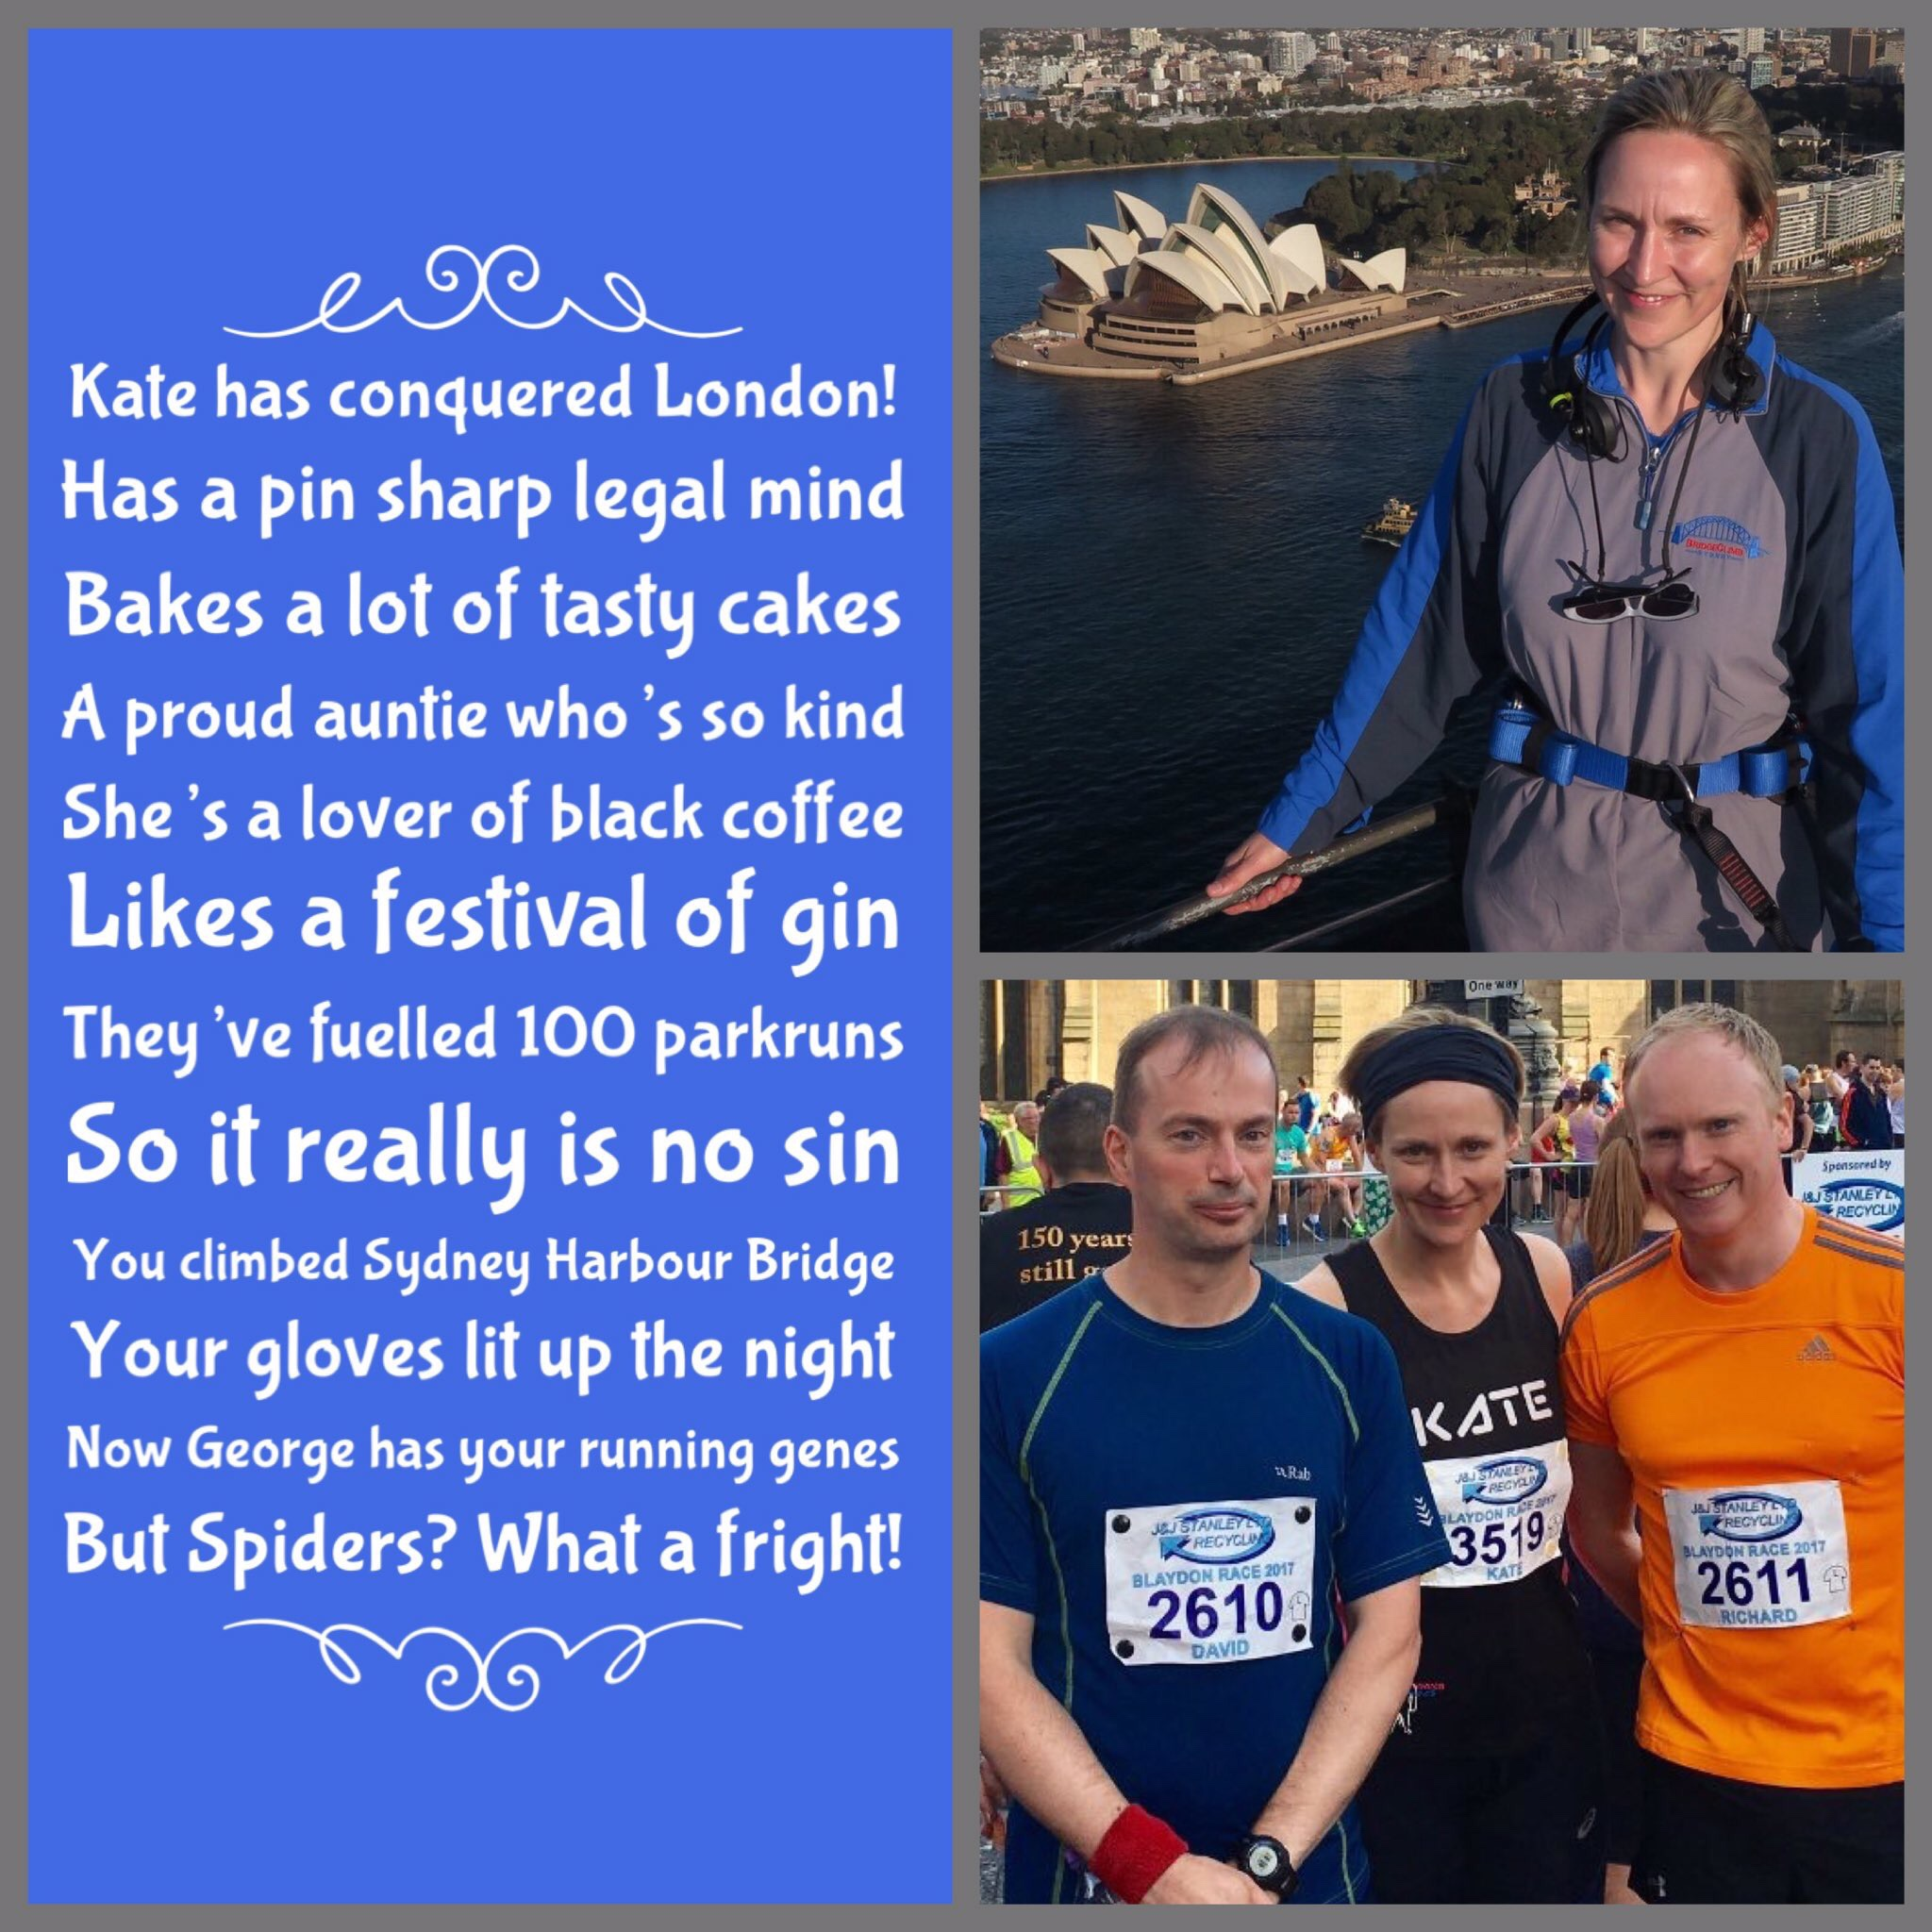 Kate has conquered London!